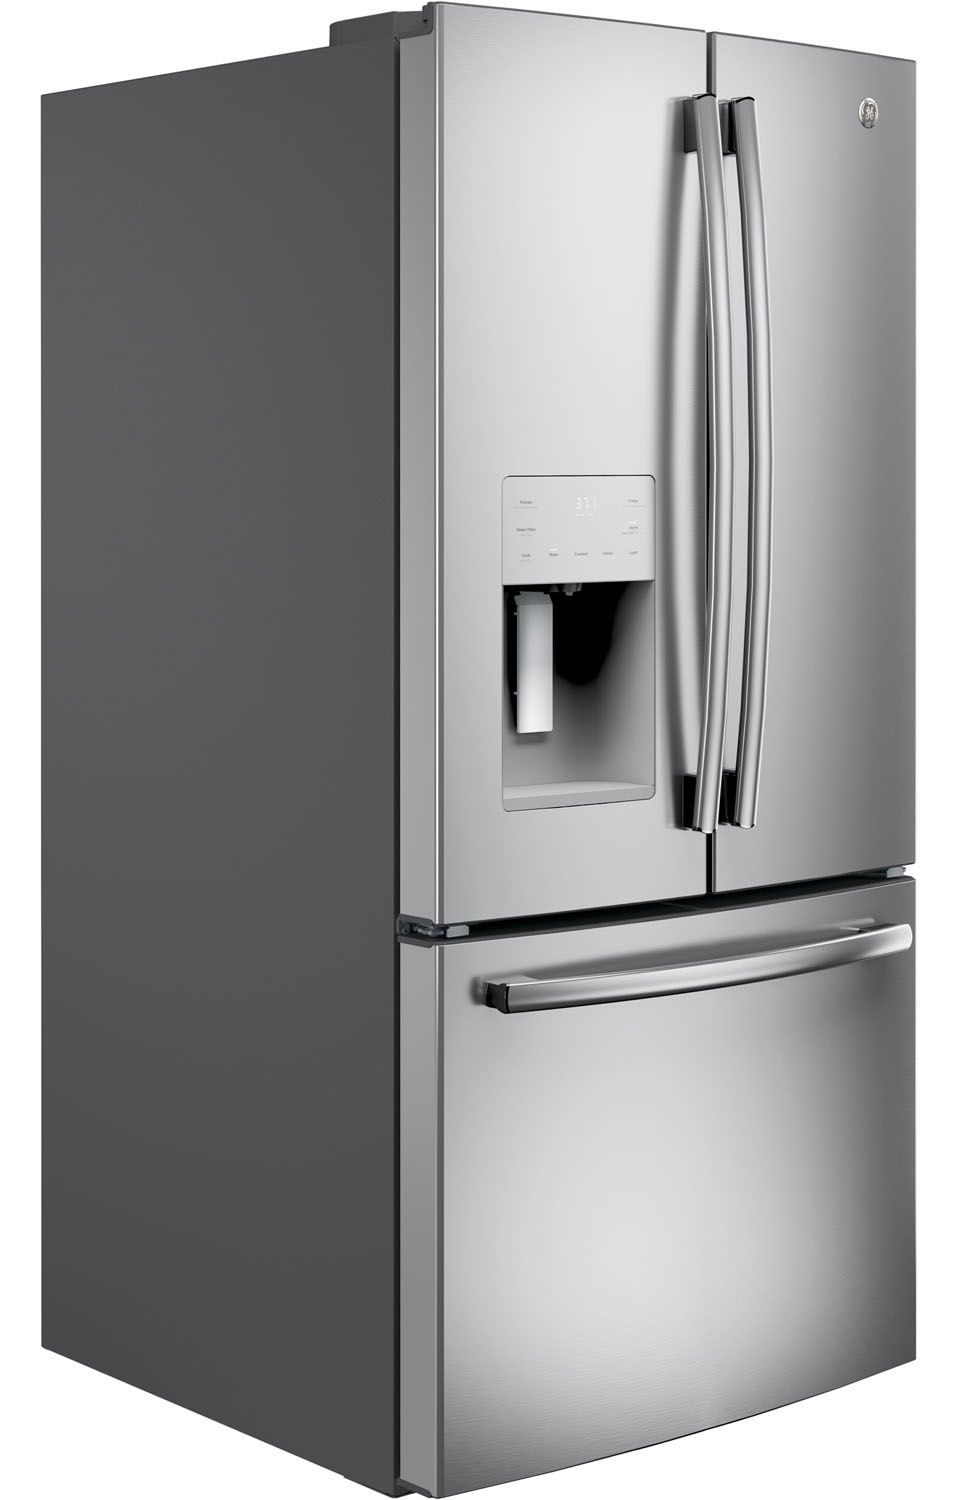 Ge 238 cu ft french door refrigerator gfe24jskss main image 1 rubansaba